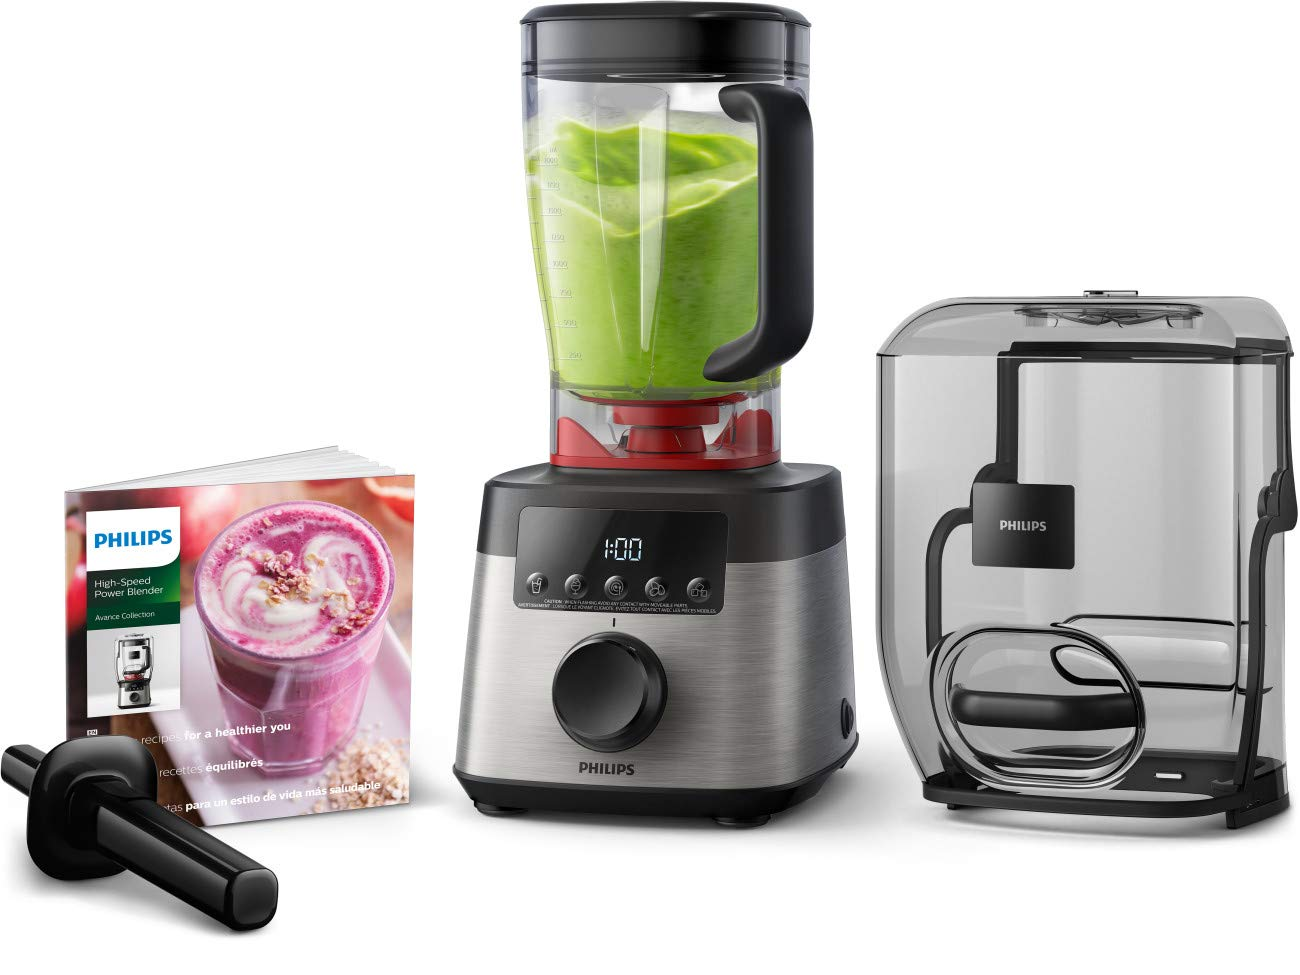 Philips HR3868 90 High Speed Power Blender with ProBlend Extreme Technology Black and Silver